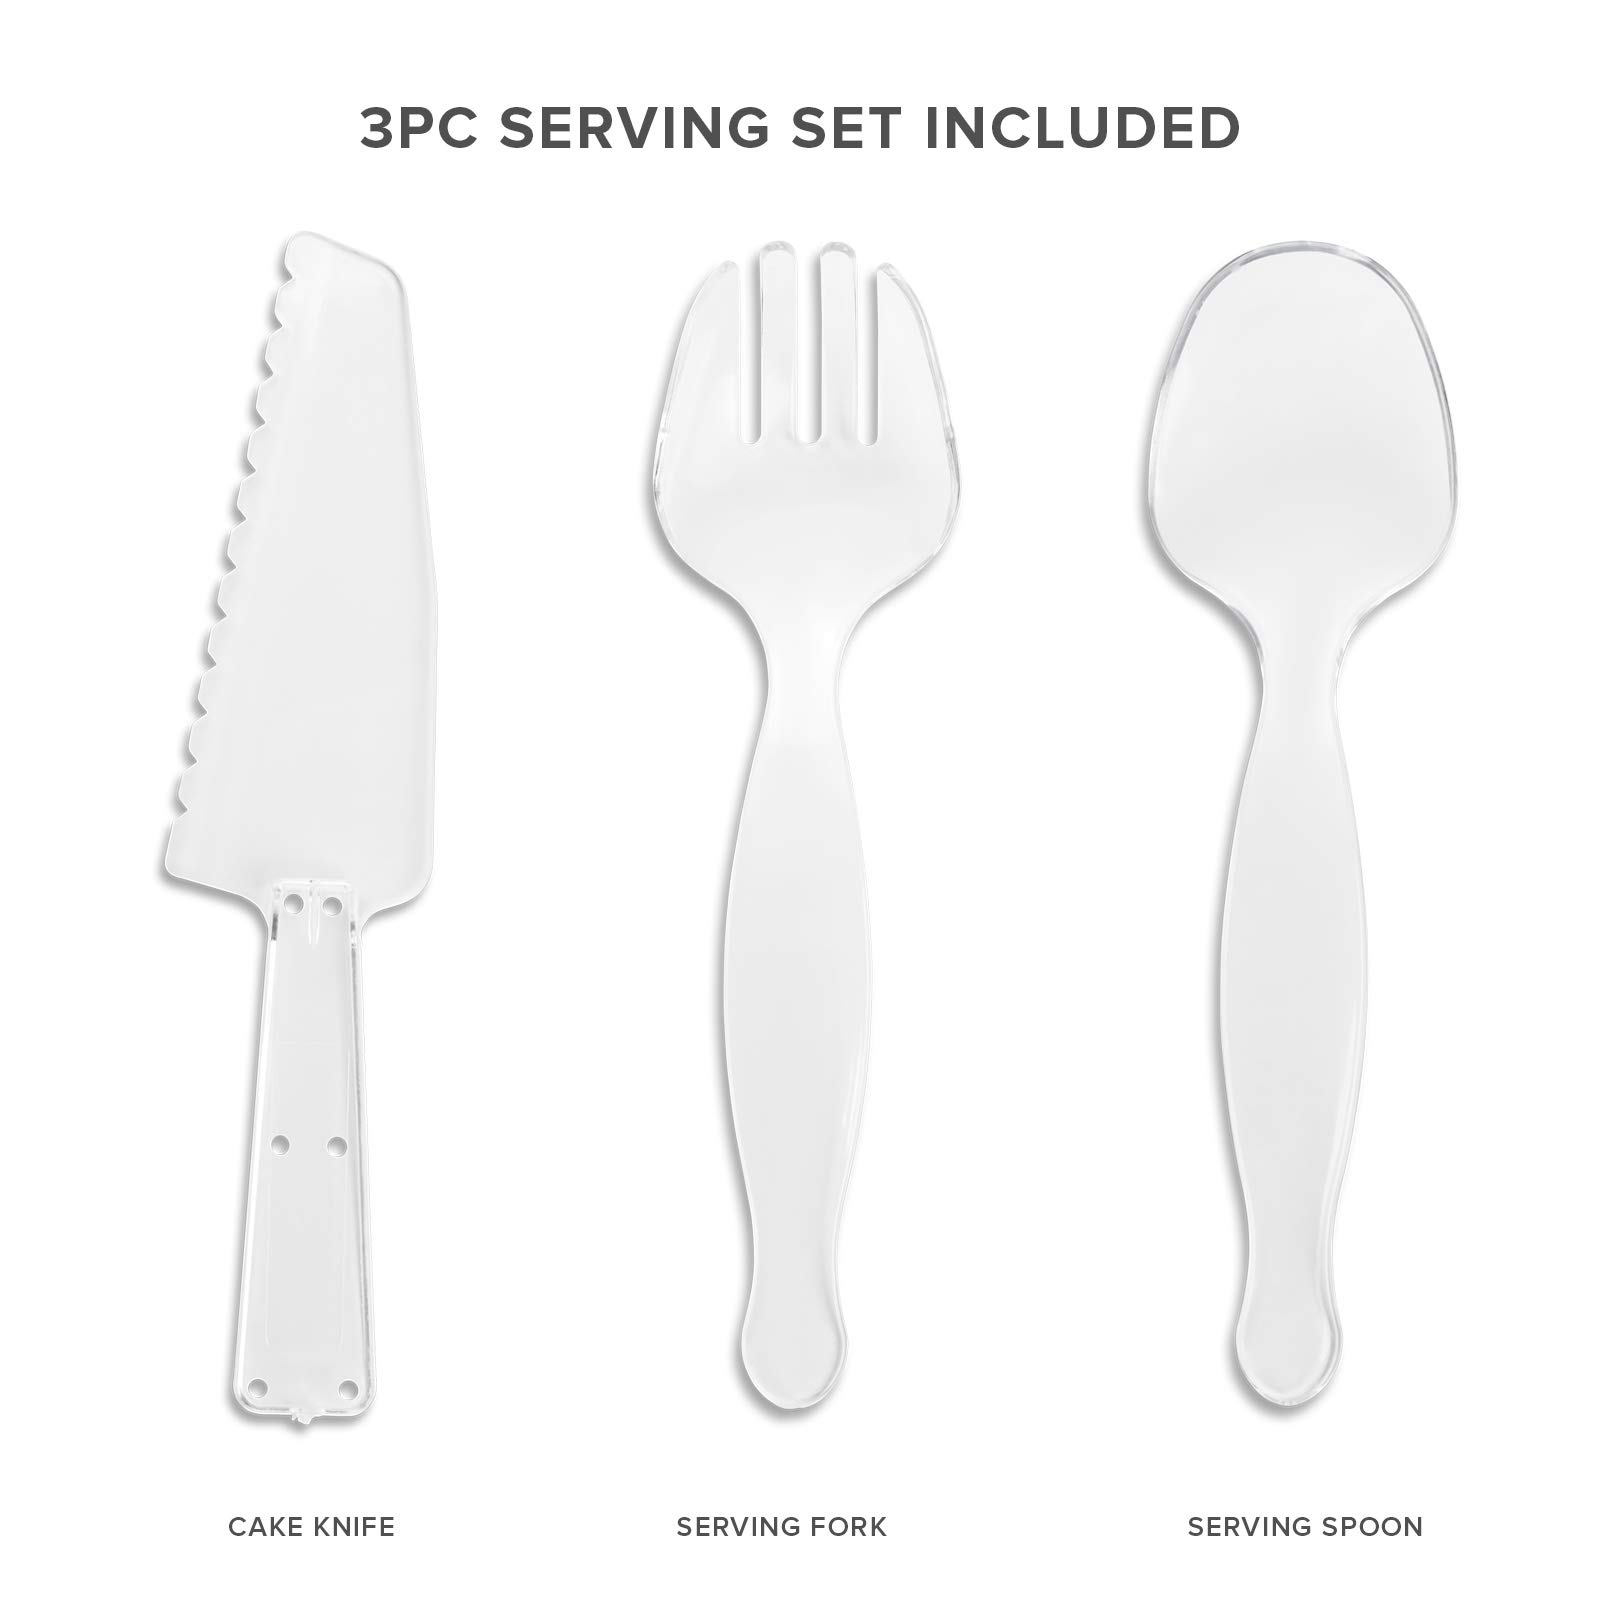 Your Gatherings - 606pc/100 Guest Silver Premium Disposable Wedding Dinnerware Set | 100 Dinner Plates, 100 Dessert Plates, 200 Forks, 100 Spoons, 100 Knives, (100 Guest Set, Silver) by Your Gatherings (Image #3)